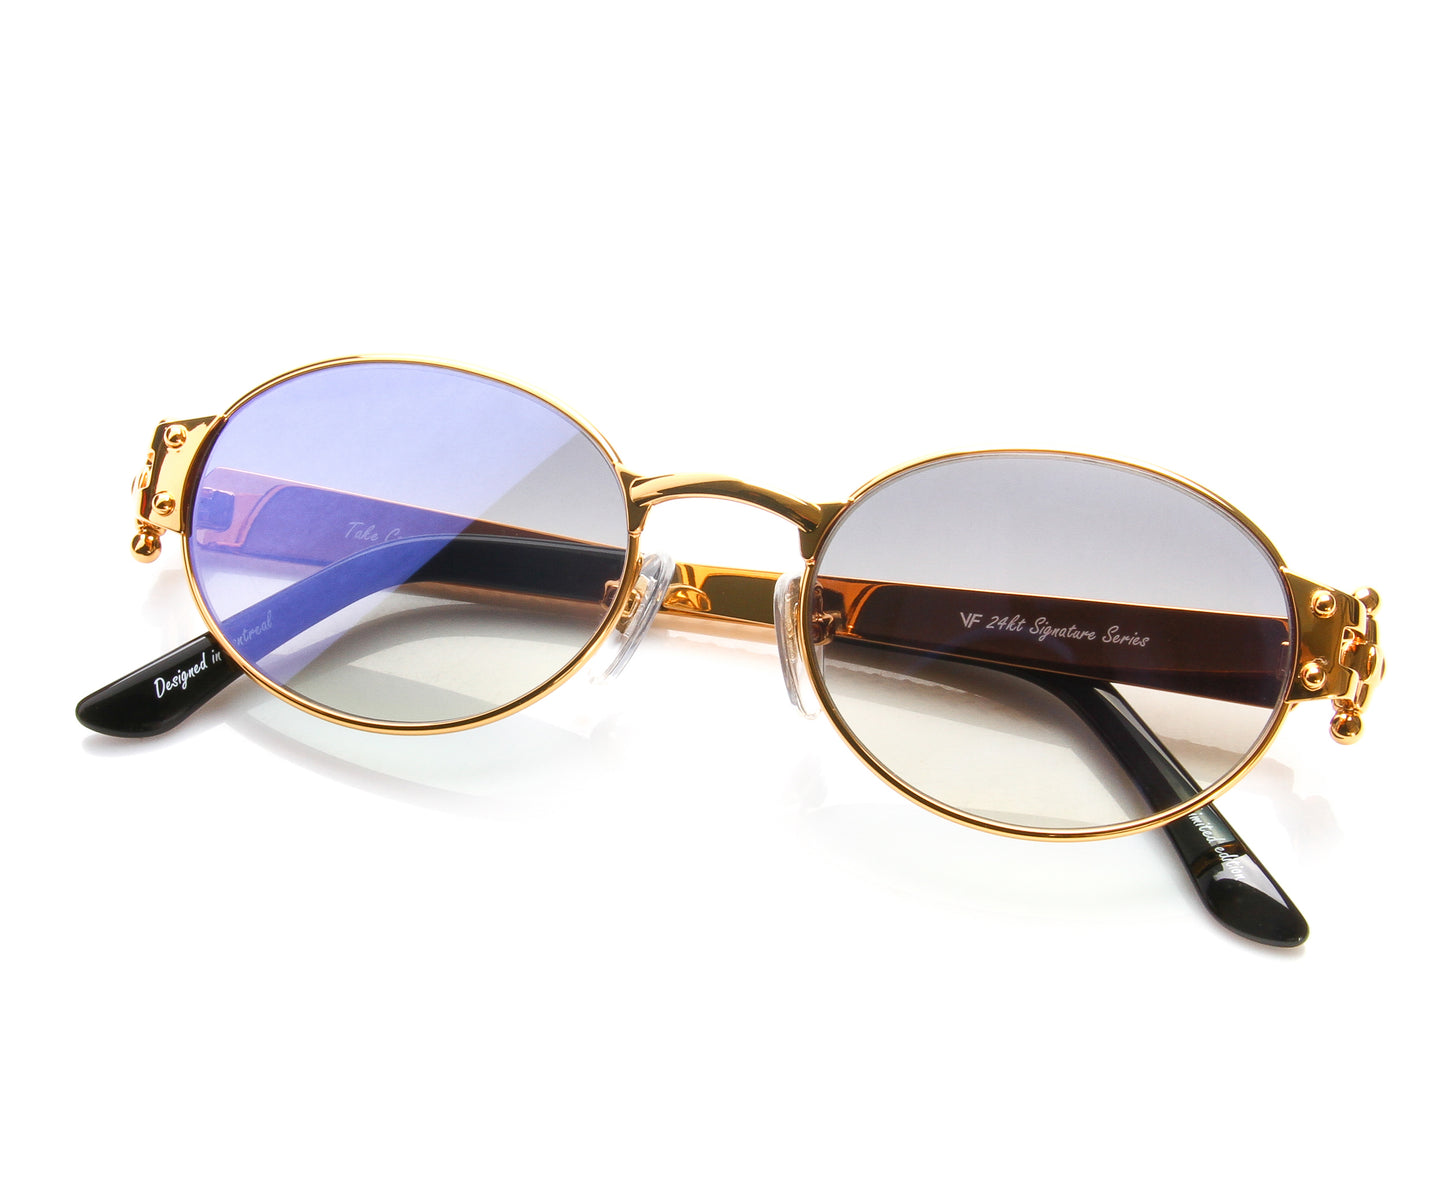 VF 2000 24KT Gold Masterpiece (Midnight Blue), VF Masterpiece , glasses frames, eyeglasses online, eyeglass frames, mens glasses, womens glasses, buy glasses online, designer eyeglasses, vintage sunglasses, retro sunglasses, vintage glasses, sunglass, eyeglass, glasses, lens, vintage frames company, vf